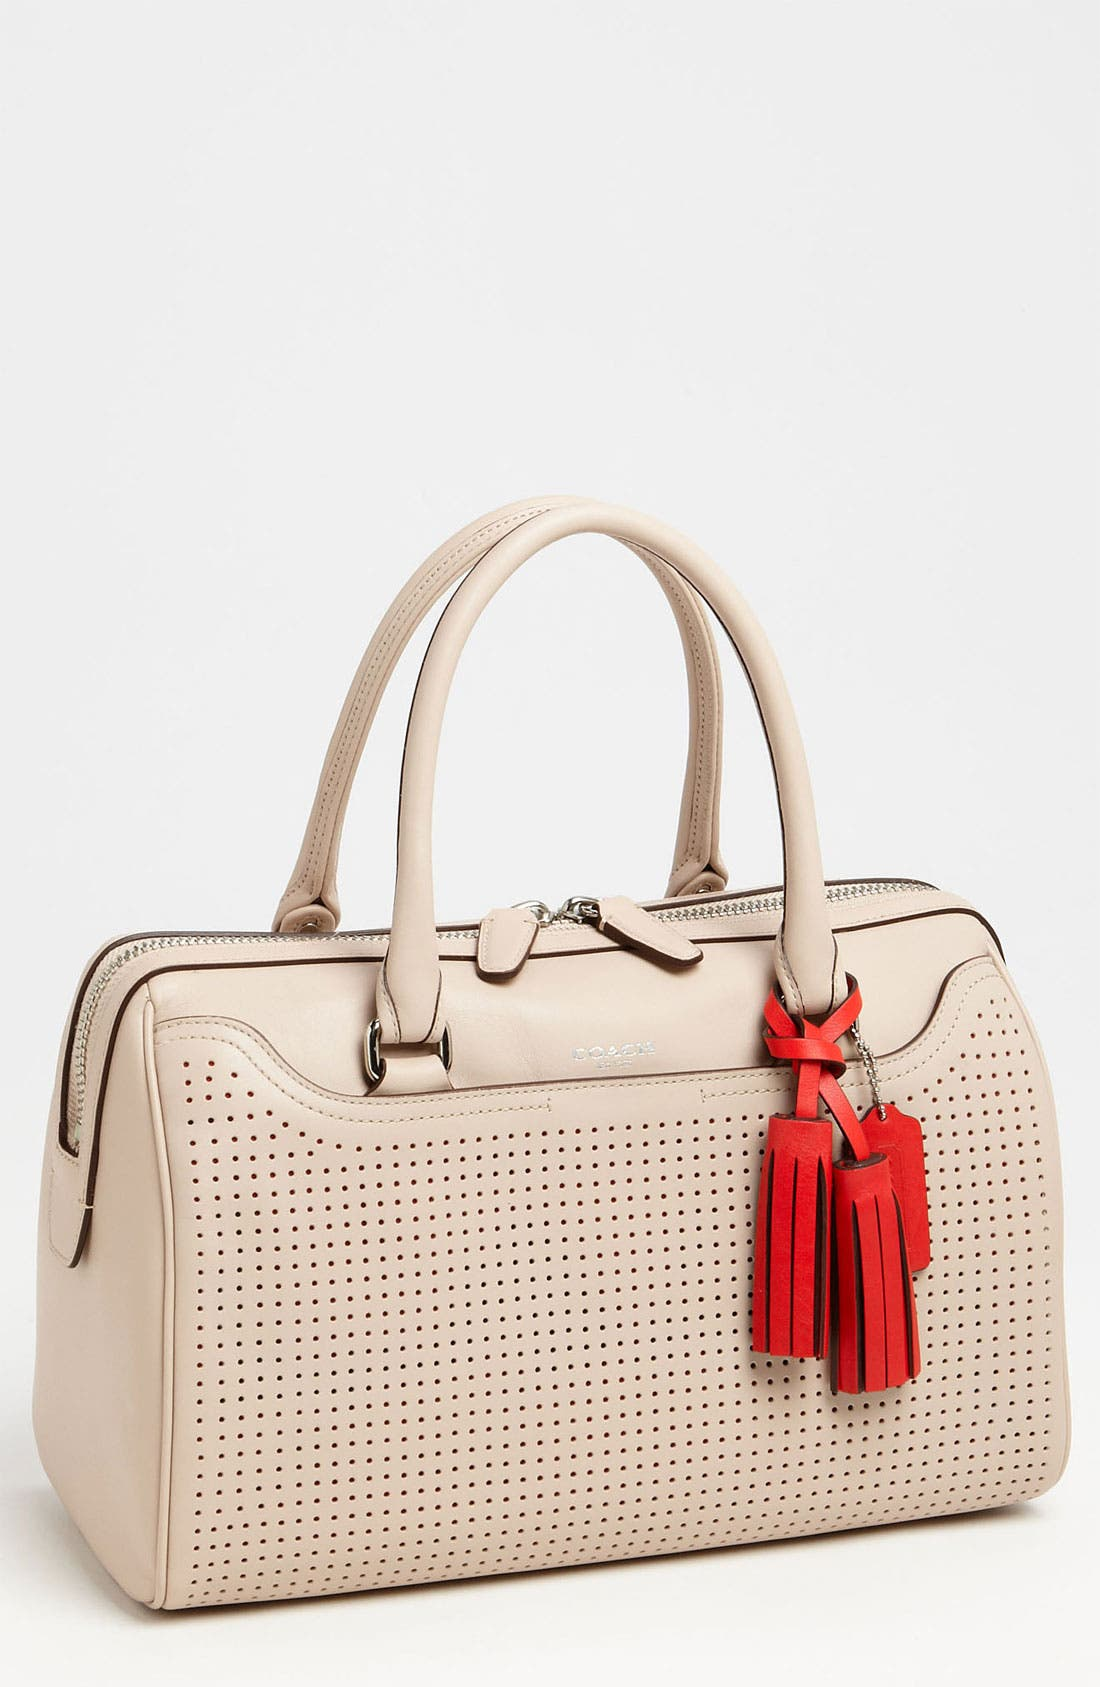 Main Image - COACH 'Legacy - Haley' Perforated Leather Satchel